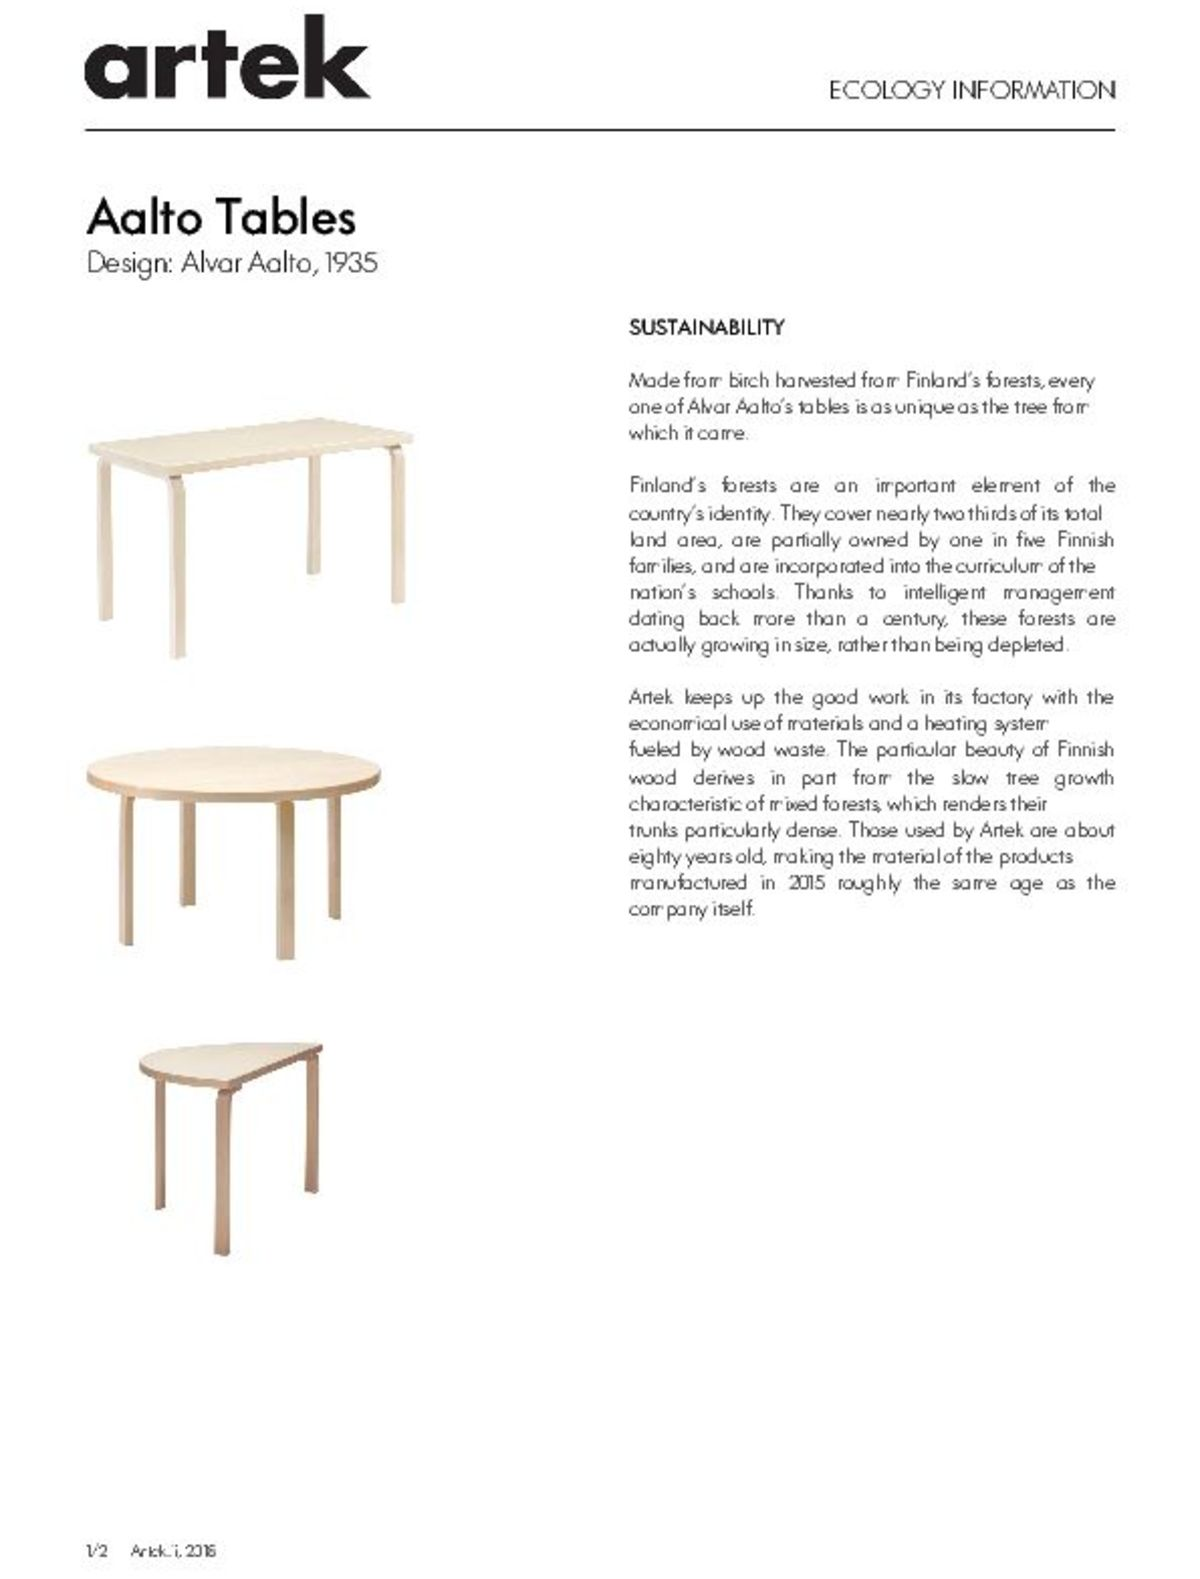 Ecology-Document-Aalto-Tables-130826111